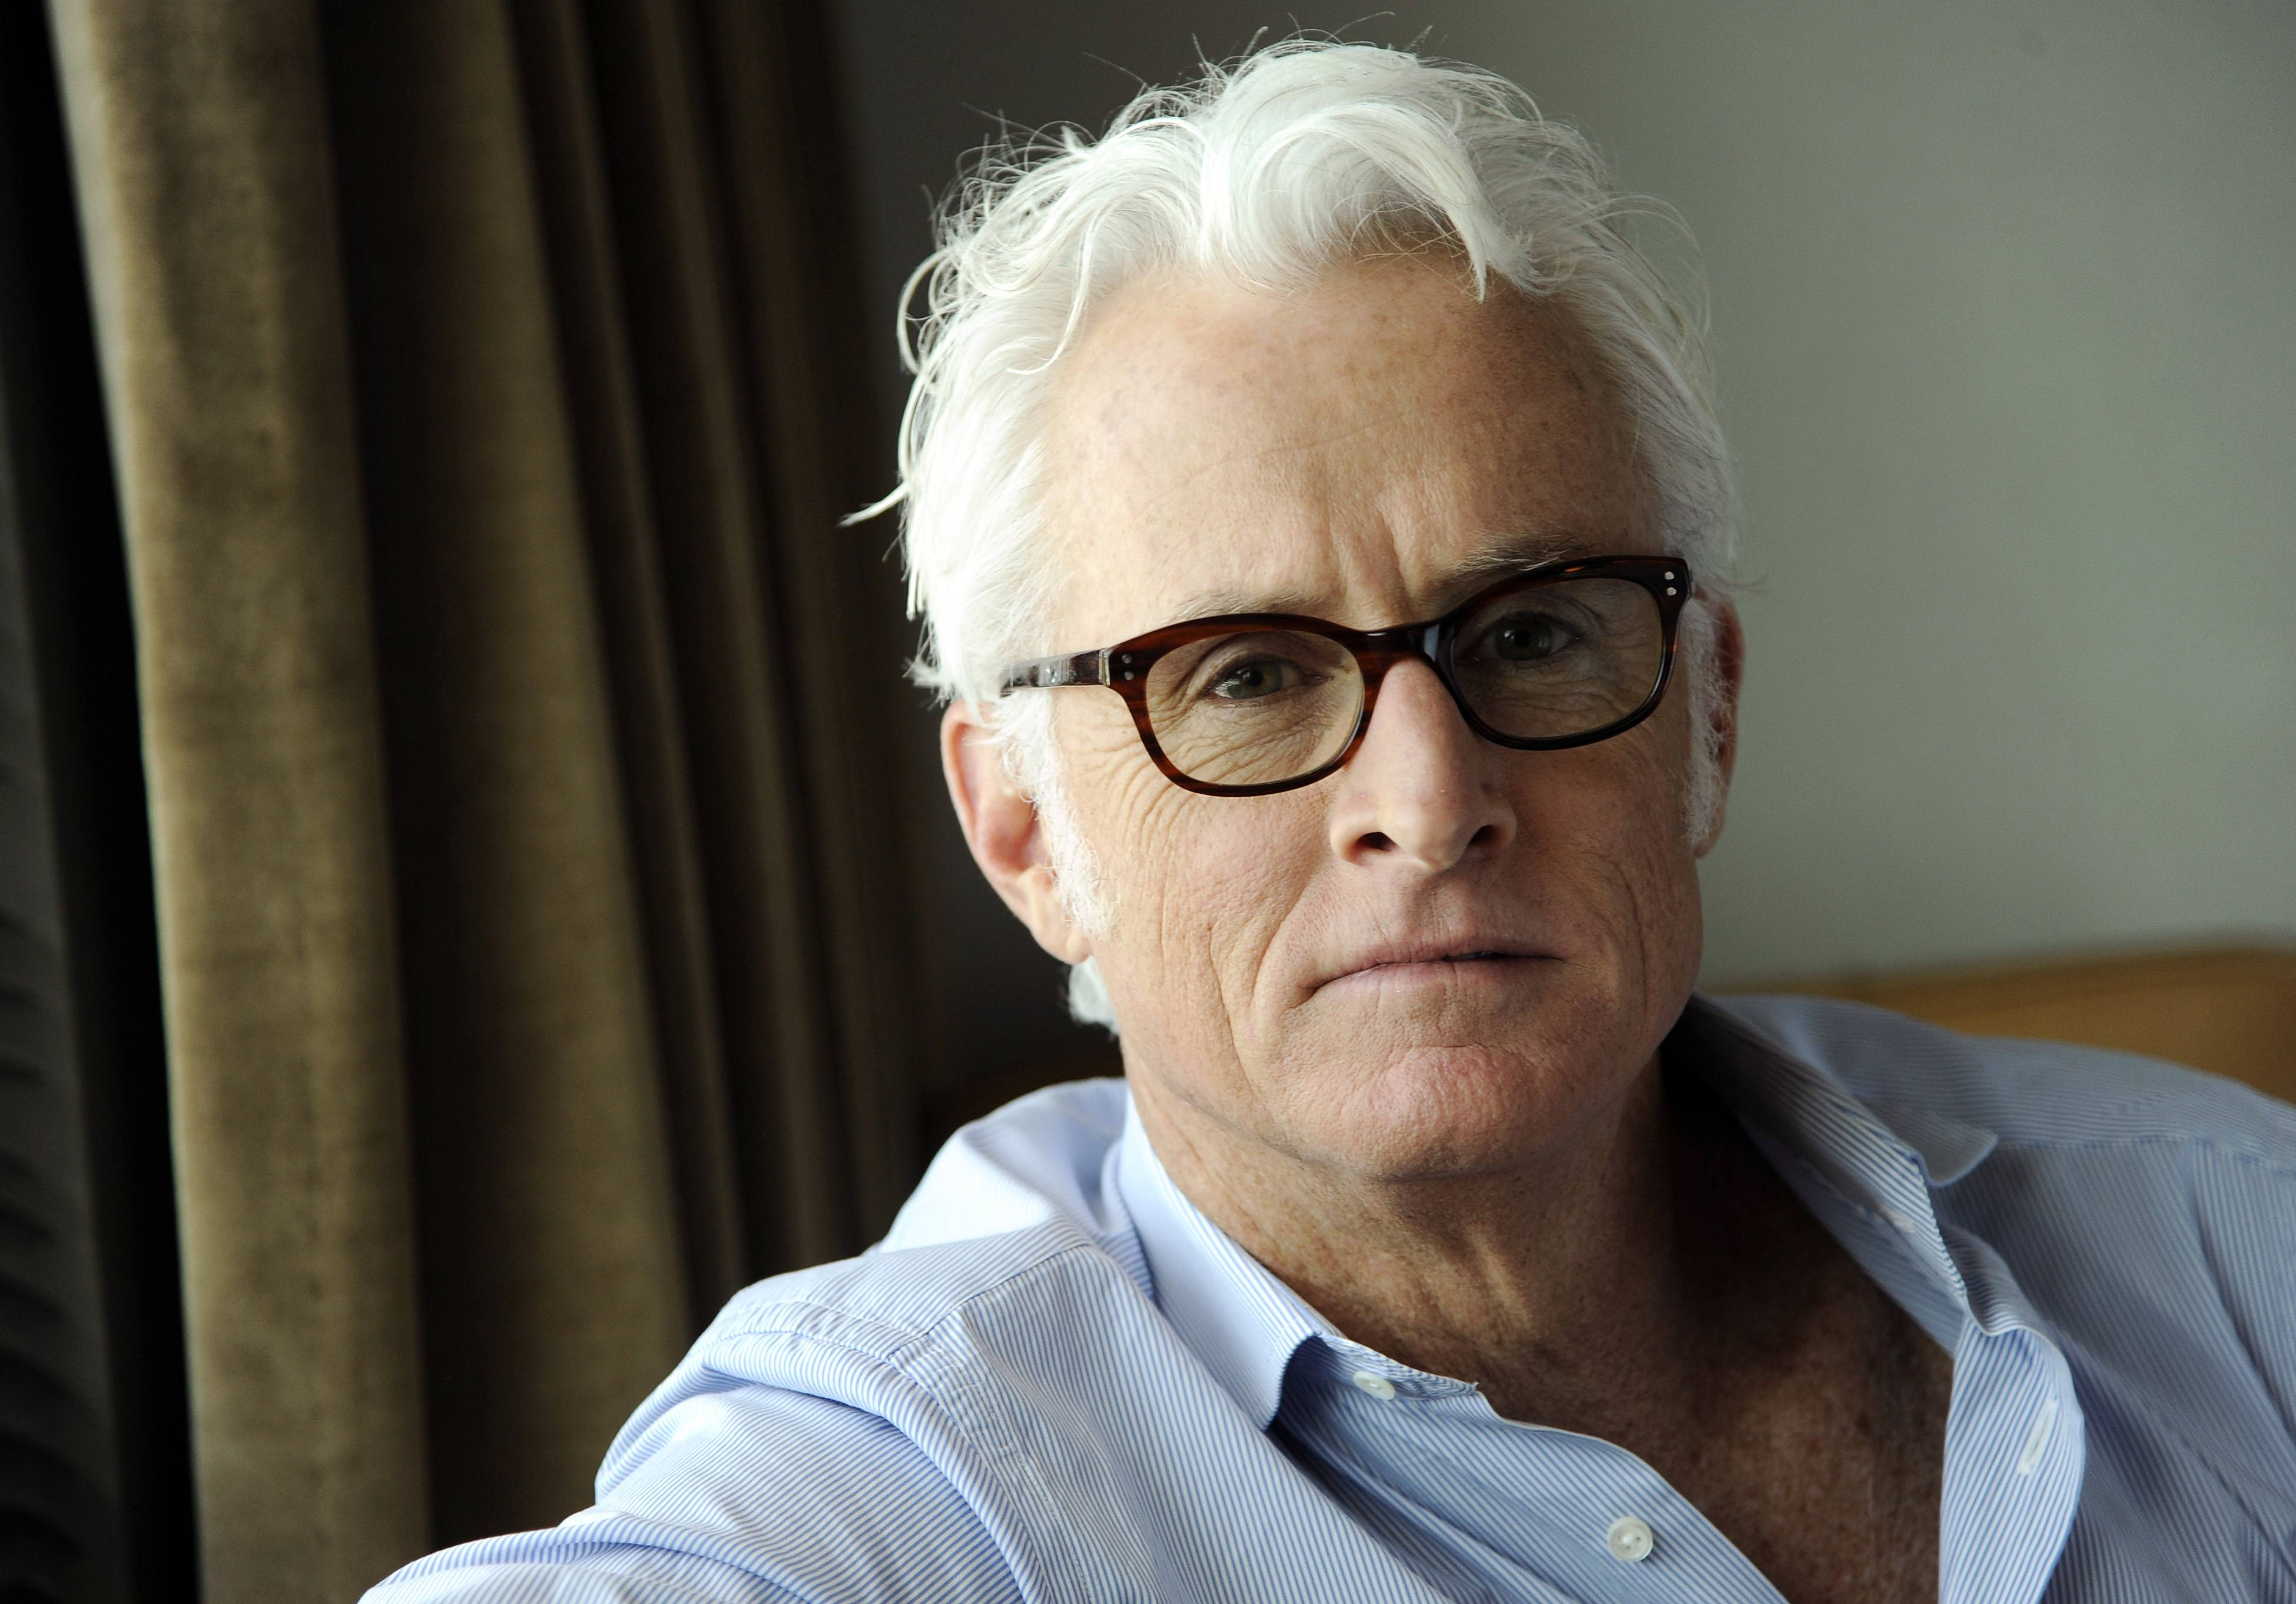 John Slattery HQ wallpapers